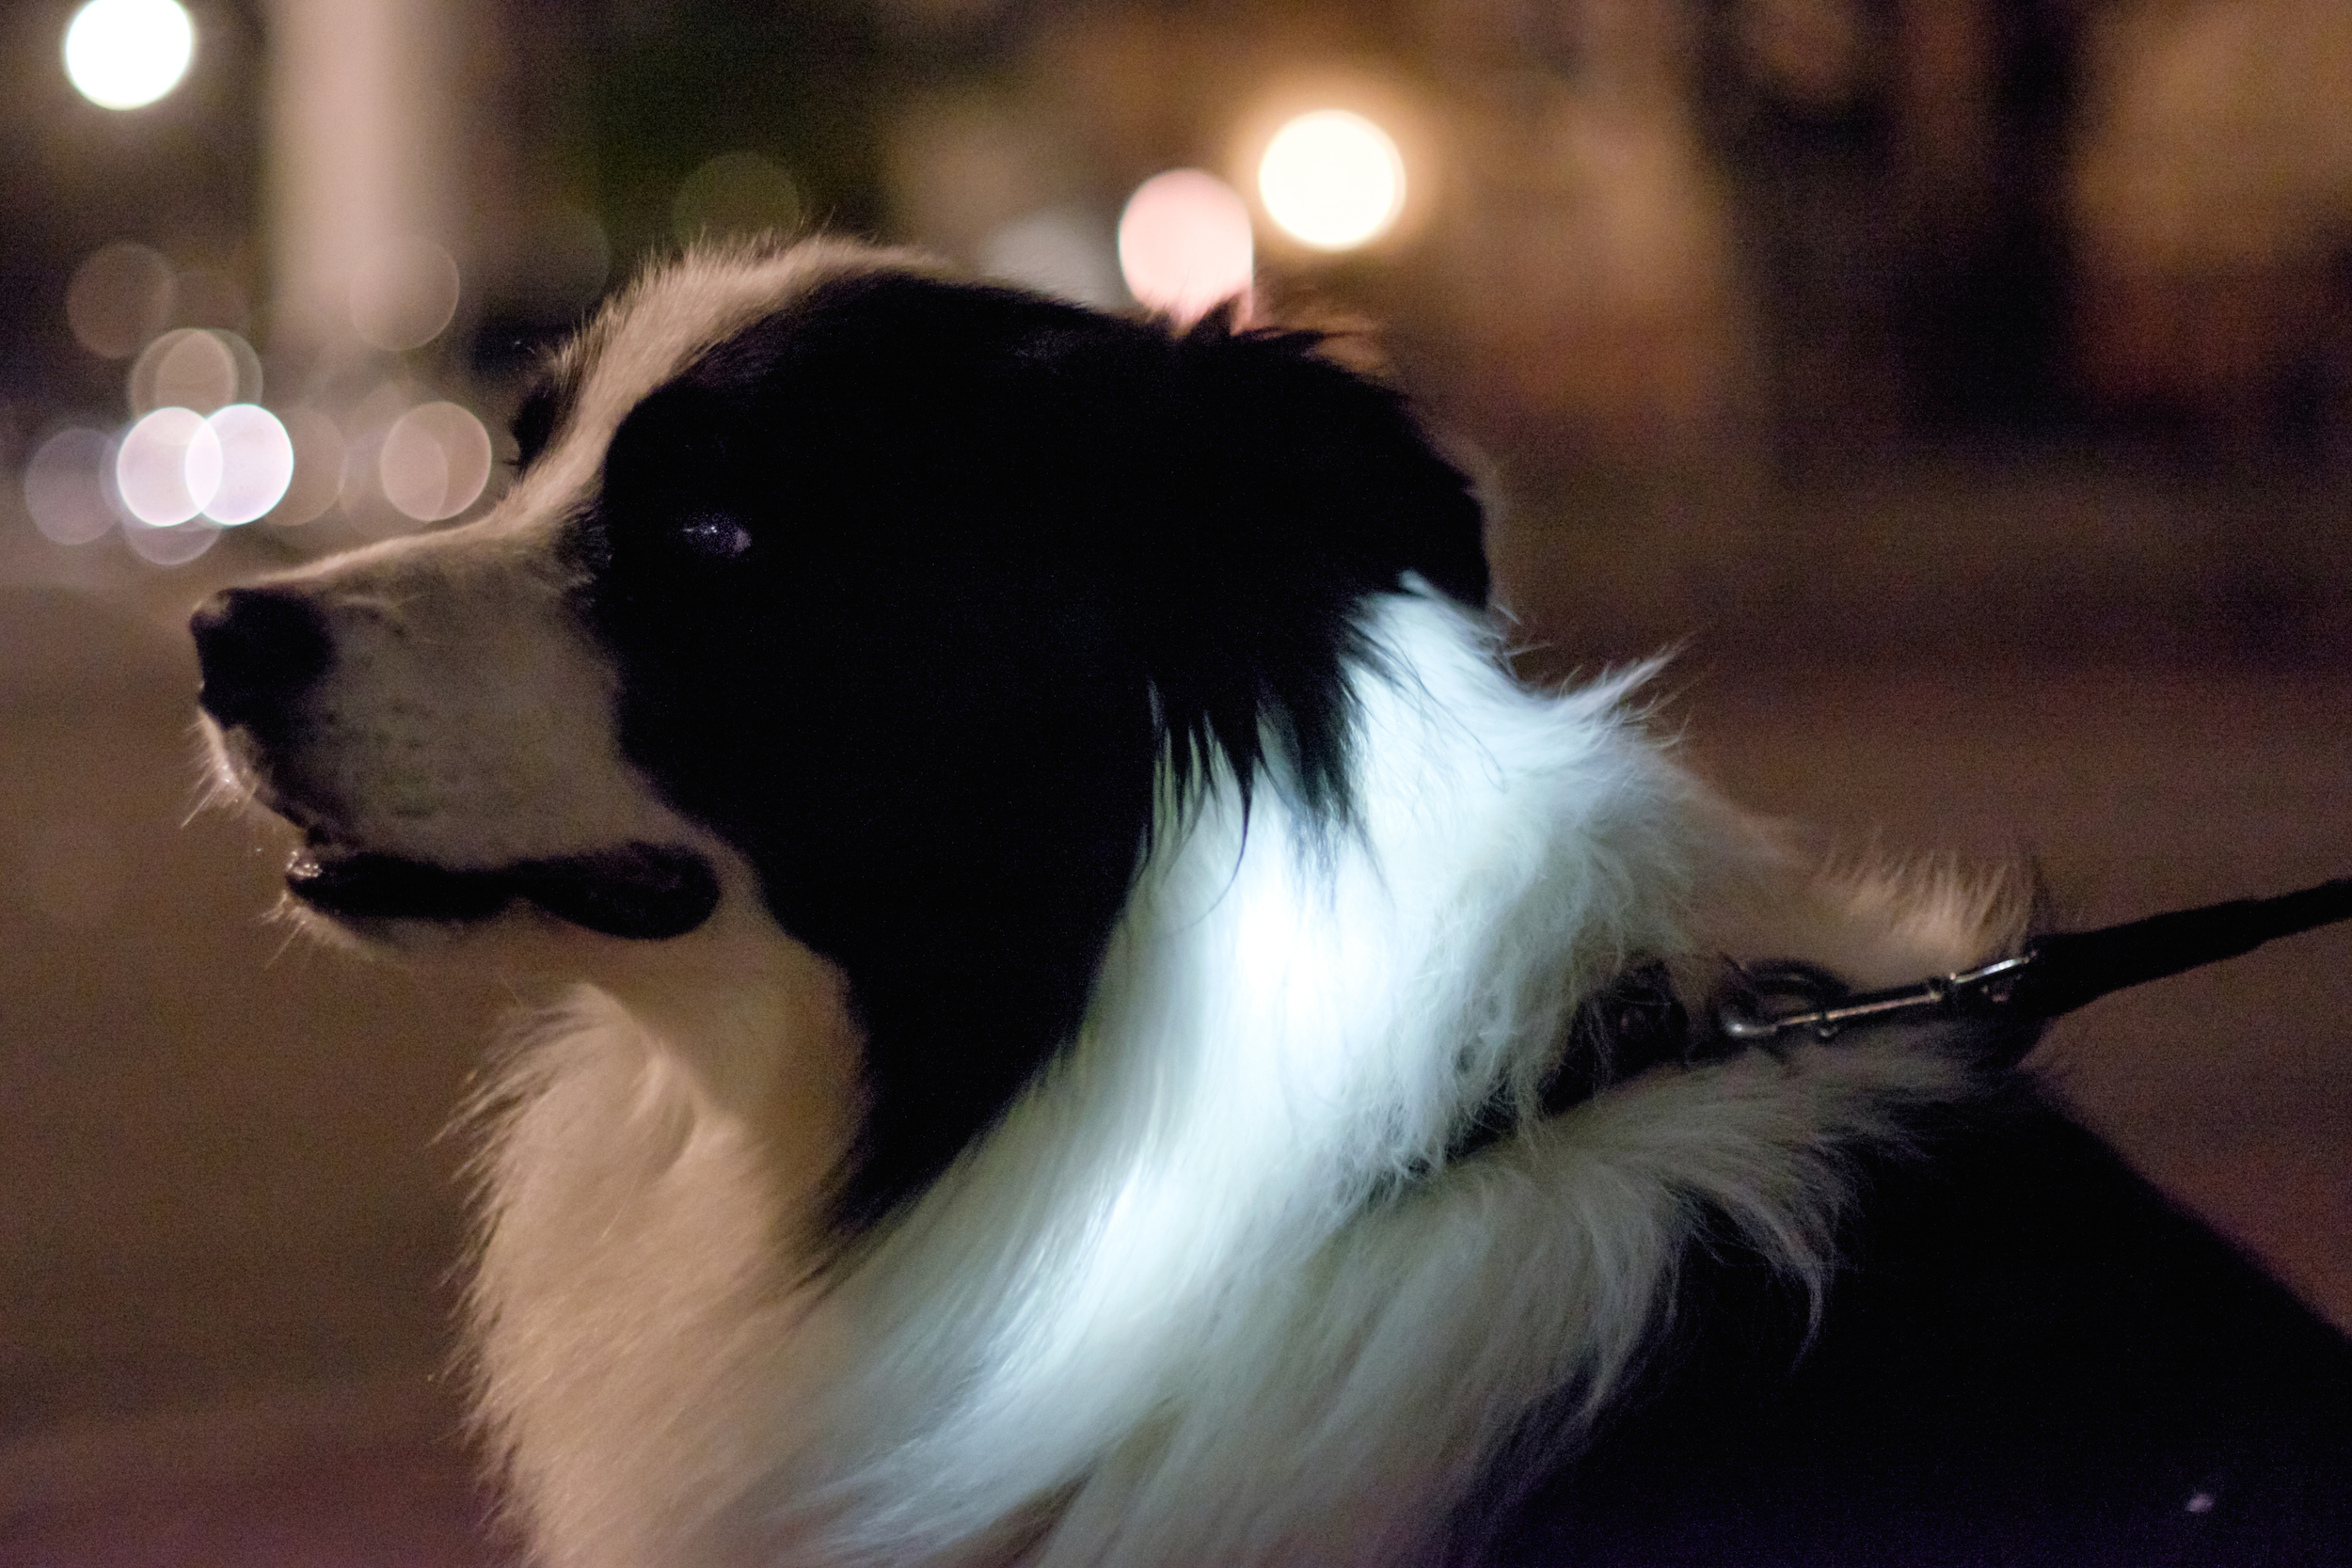 The LED collar made the dog´s mane glow most magically, I just had to stop and make the portrait.